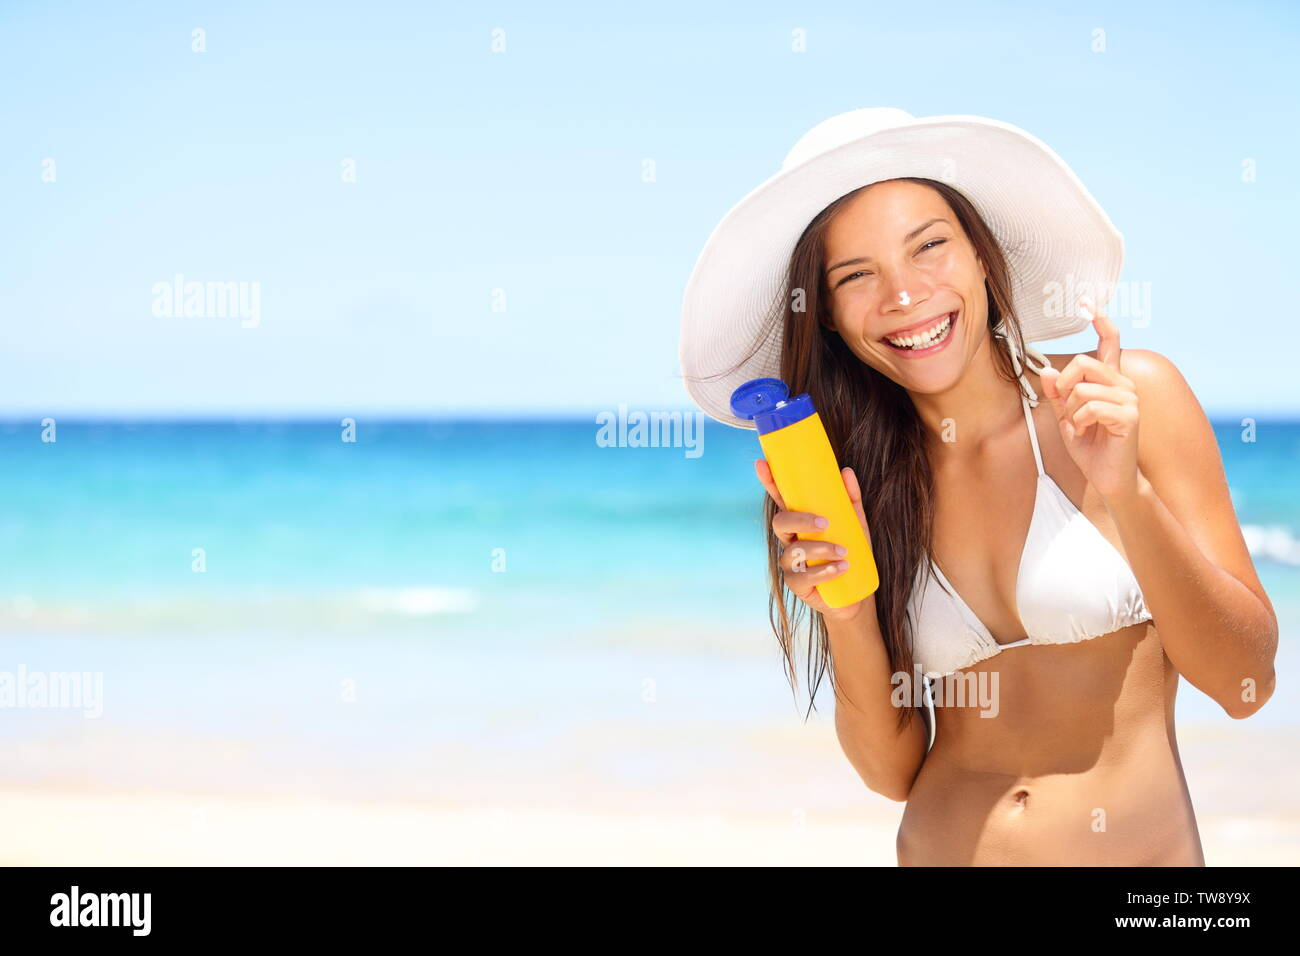 Sunscreen beach woman in bikini applying sun block solar cream for UV protection. Girl smiling to camera, wearing white sun hat, happy on vacation travel holiday. Hawaii, USA Stock Photo